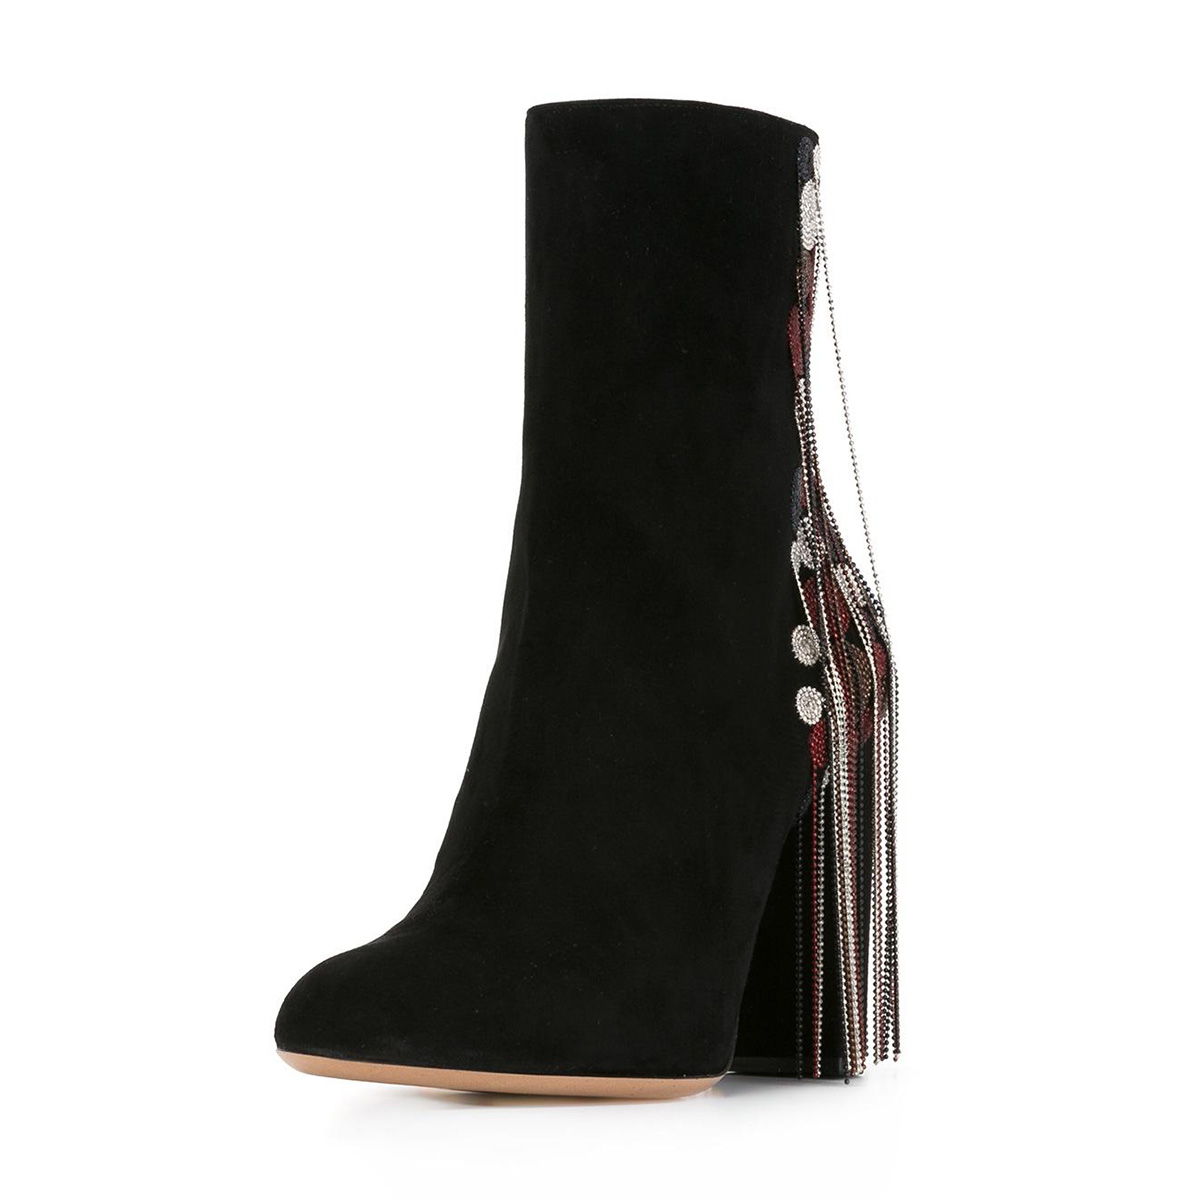 Black Evening Shoes Chunky Heel Suede Ankle Boots with Beads Tassels